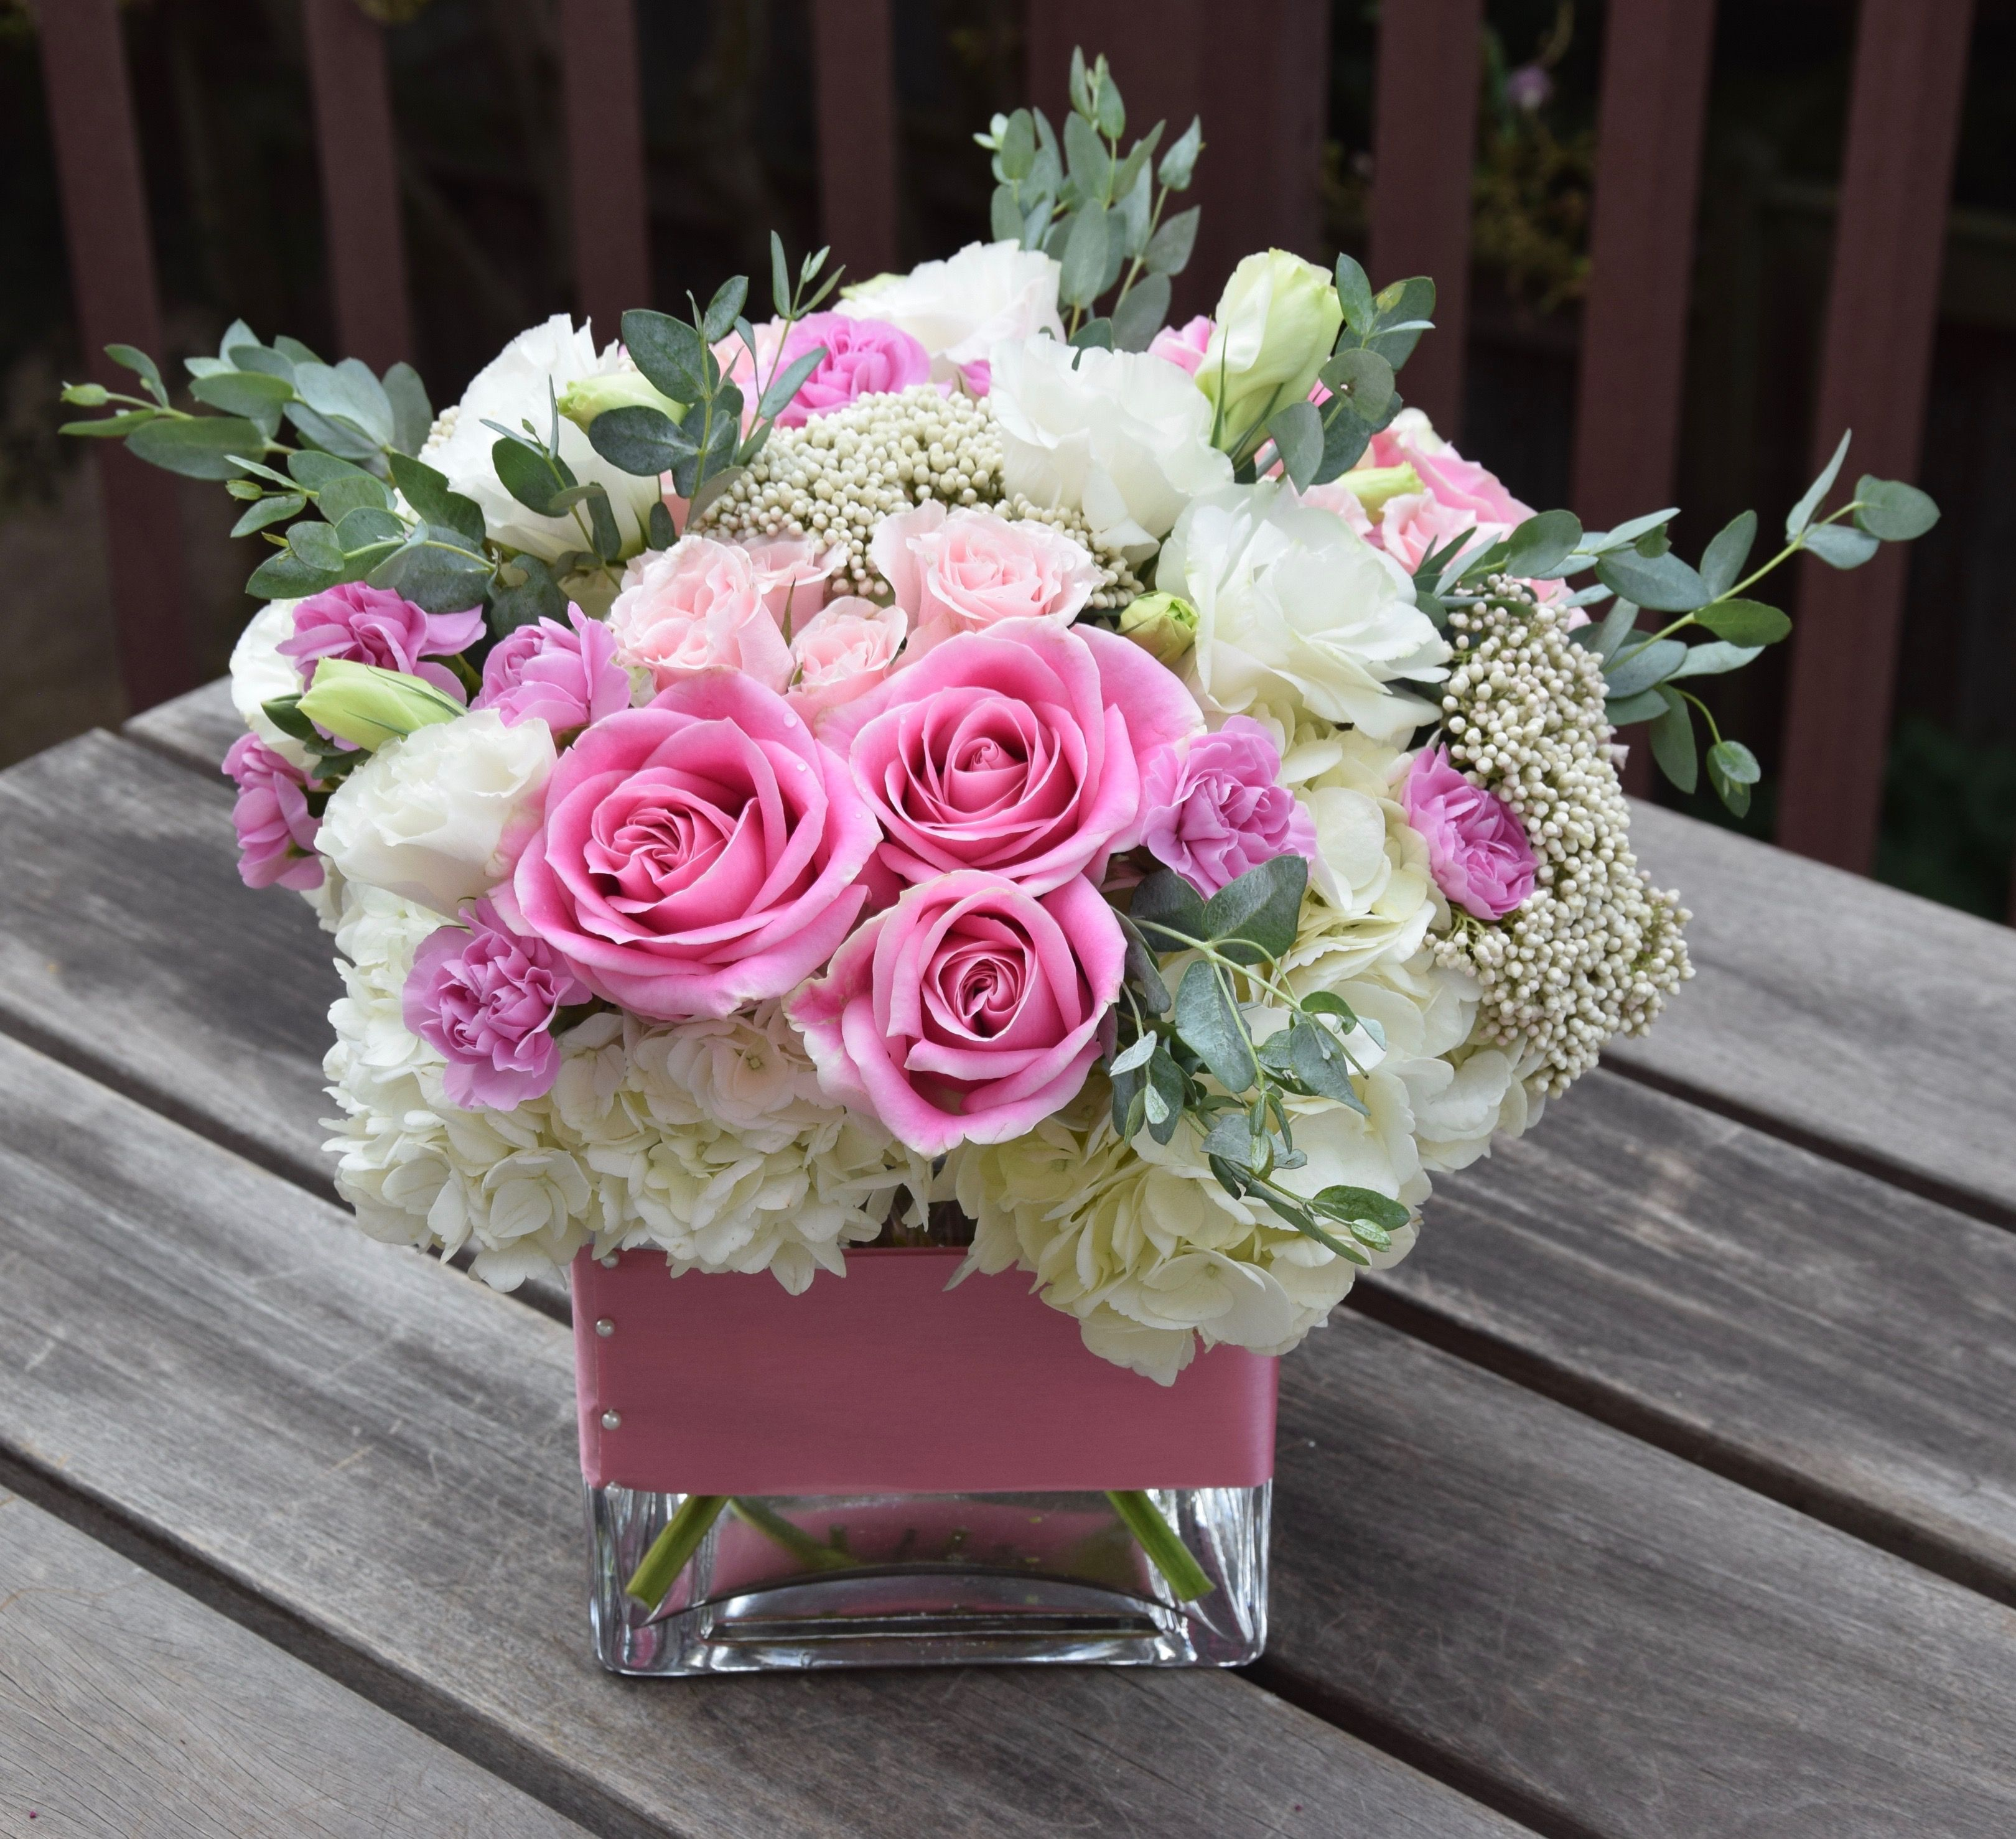 Sweet Flower Arrangement With Pinks And Whites Hydrangeas Roses Spray Roses Mini Carnations Eucalyp Flower Arrangements Valentines Flowers Flower Delivery